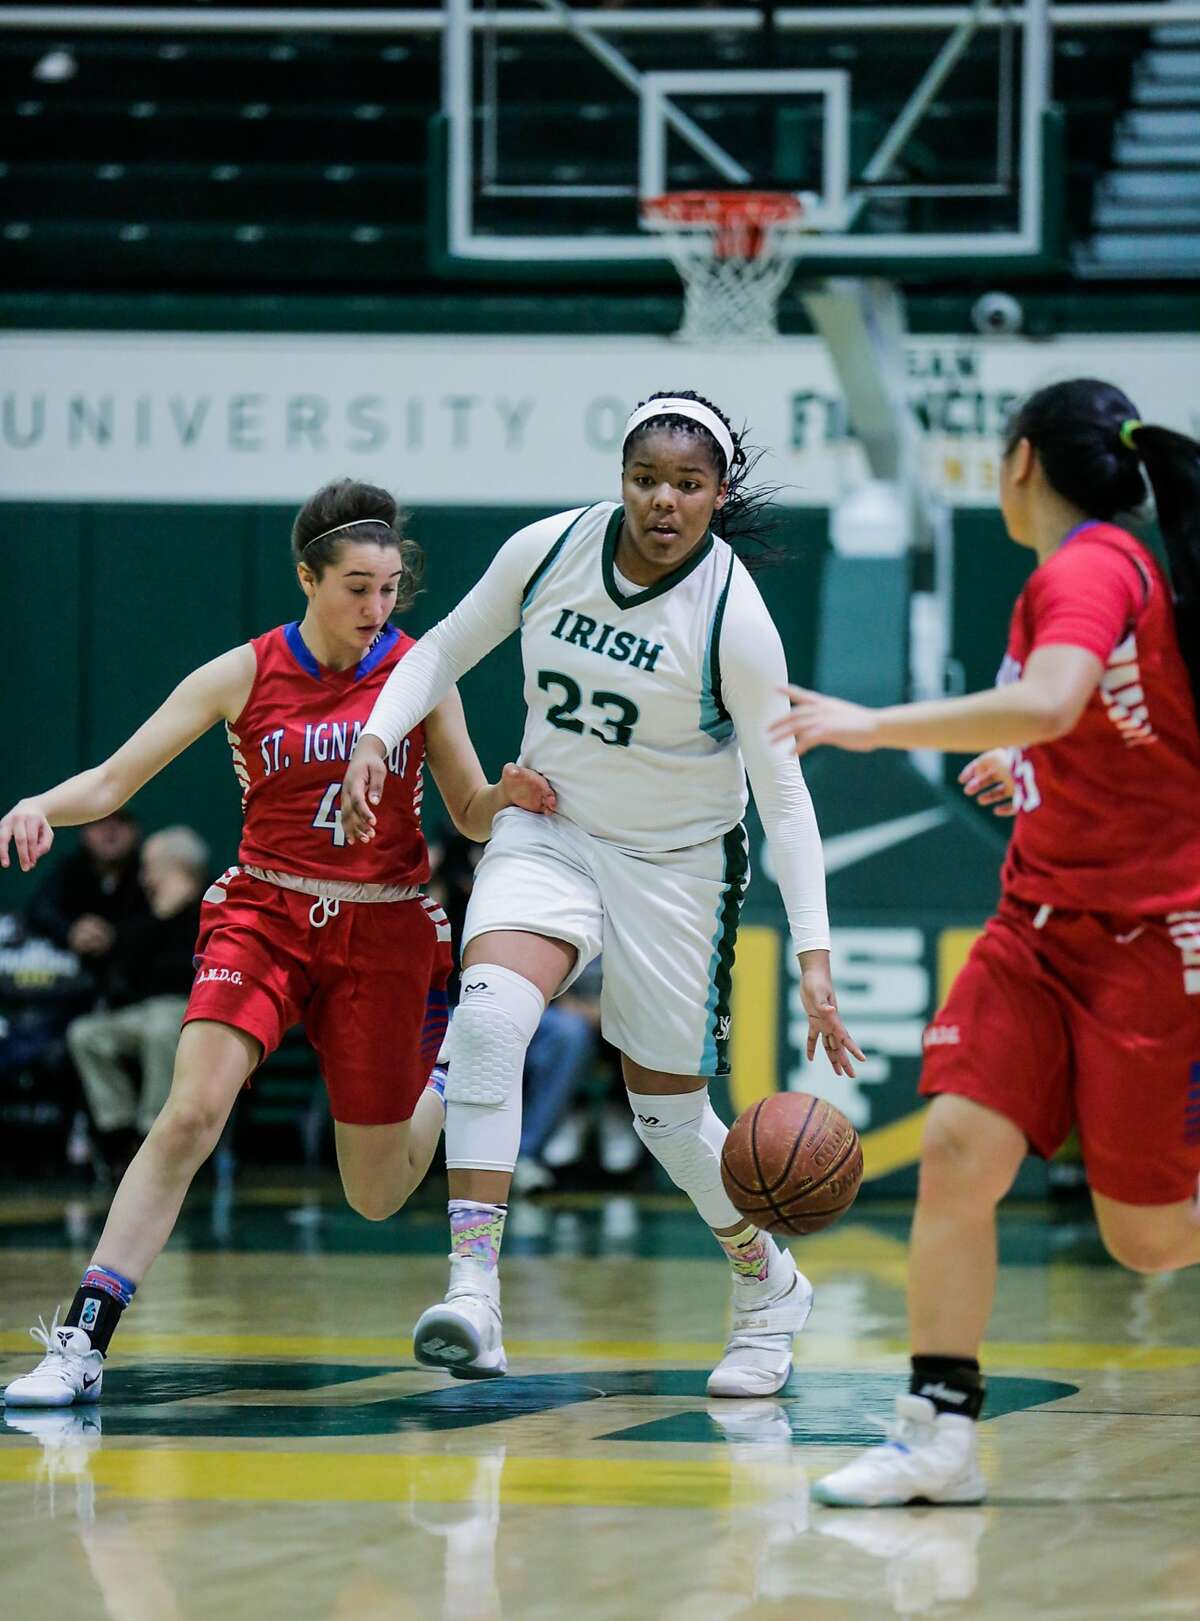 Sacred Heart player IImar'l Thomas (#23) drives the ball past St. Ignacius player Rachel Harvey (#4)during a game between Sacred Heart Cathedral and St. Ignatius at War Memorial gymnasium in San Francisco, Calif., on Tuesday, Jan. 10, 2017.